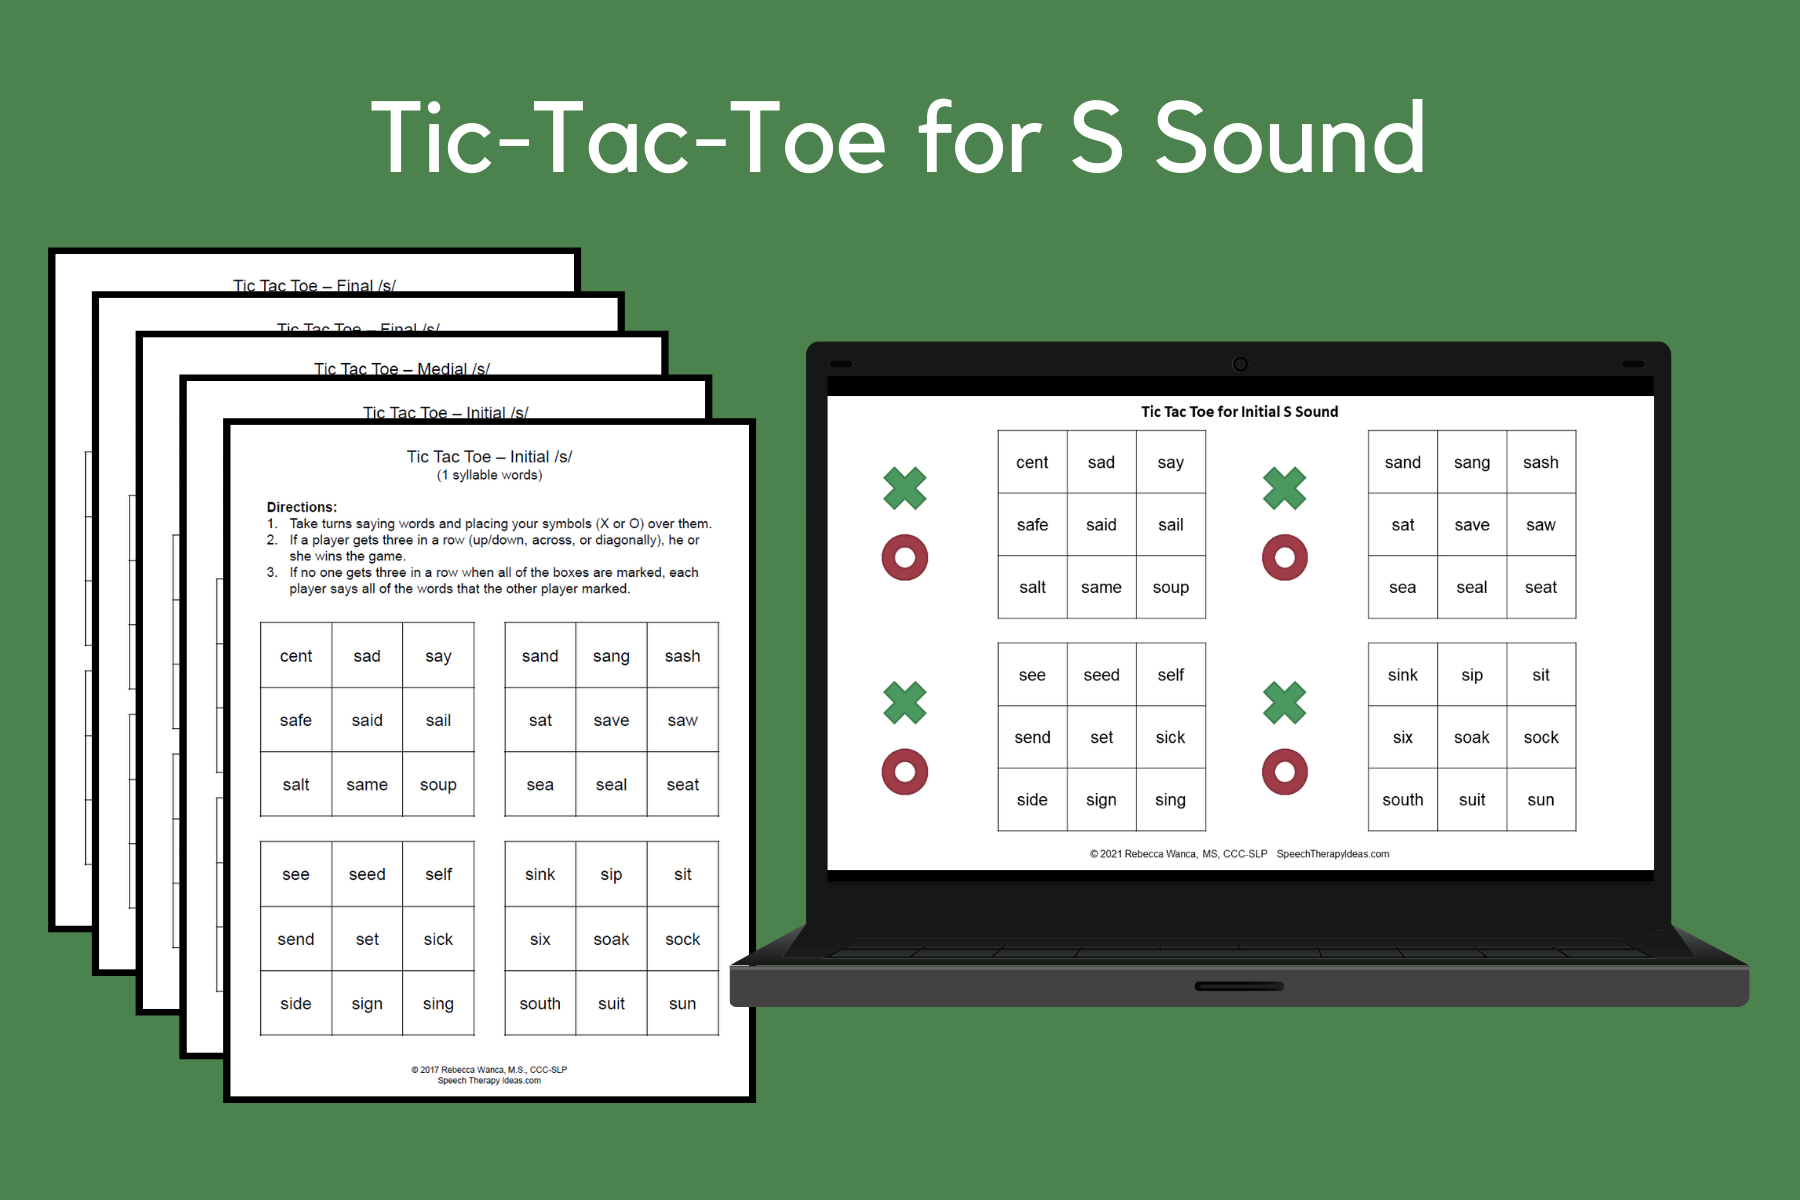 Tic-Tac-Toe Games For S Sound